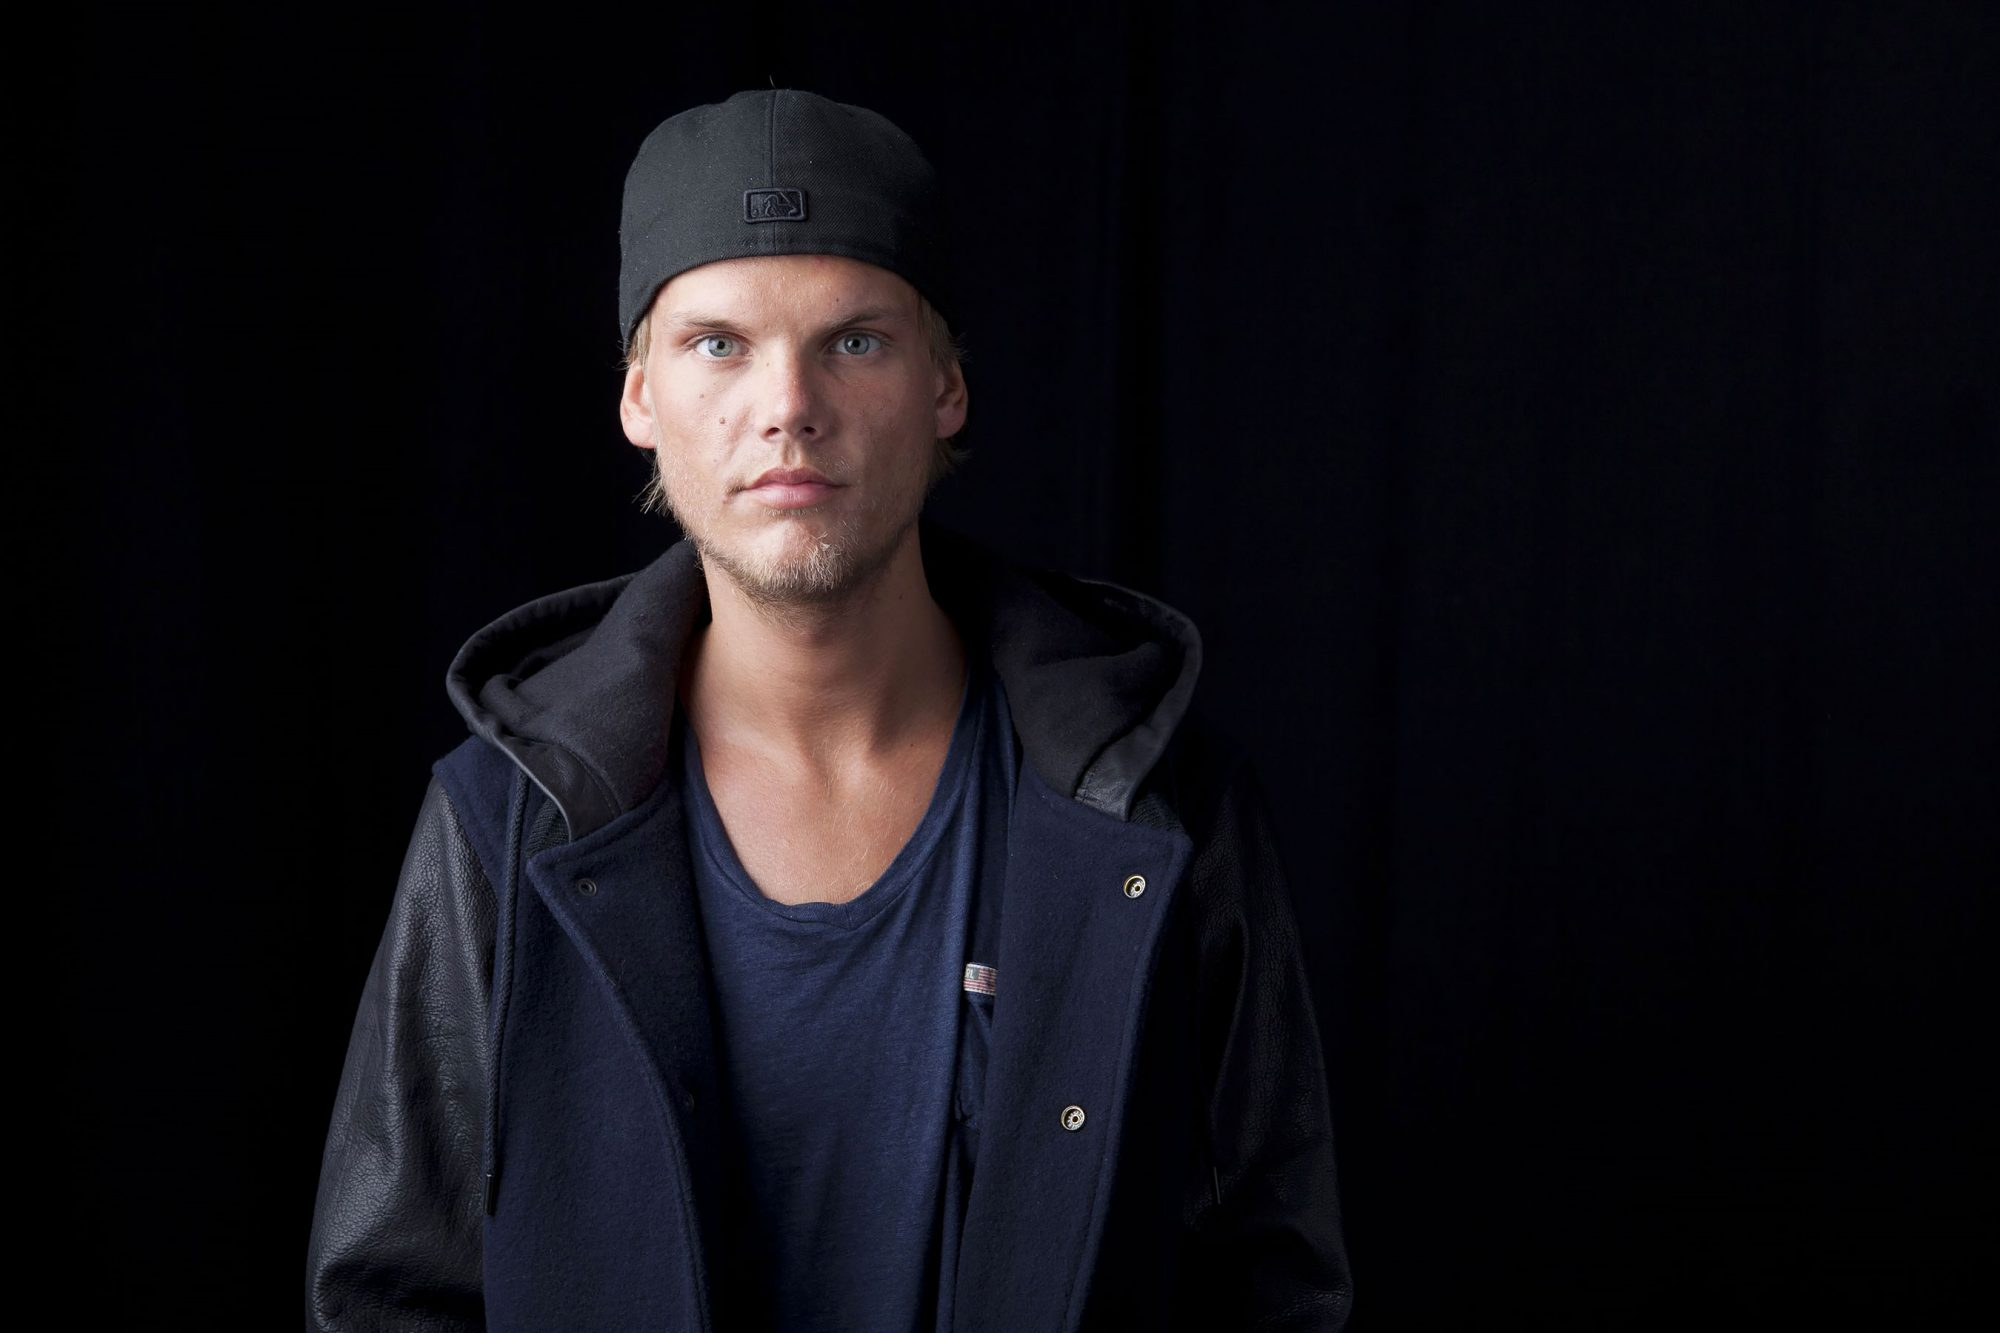 Avicii Portraits, New York, USA